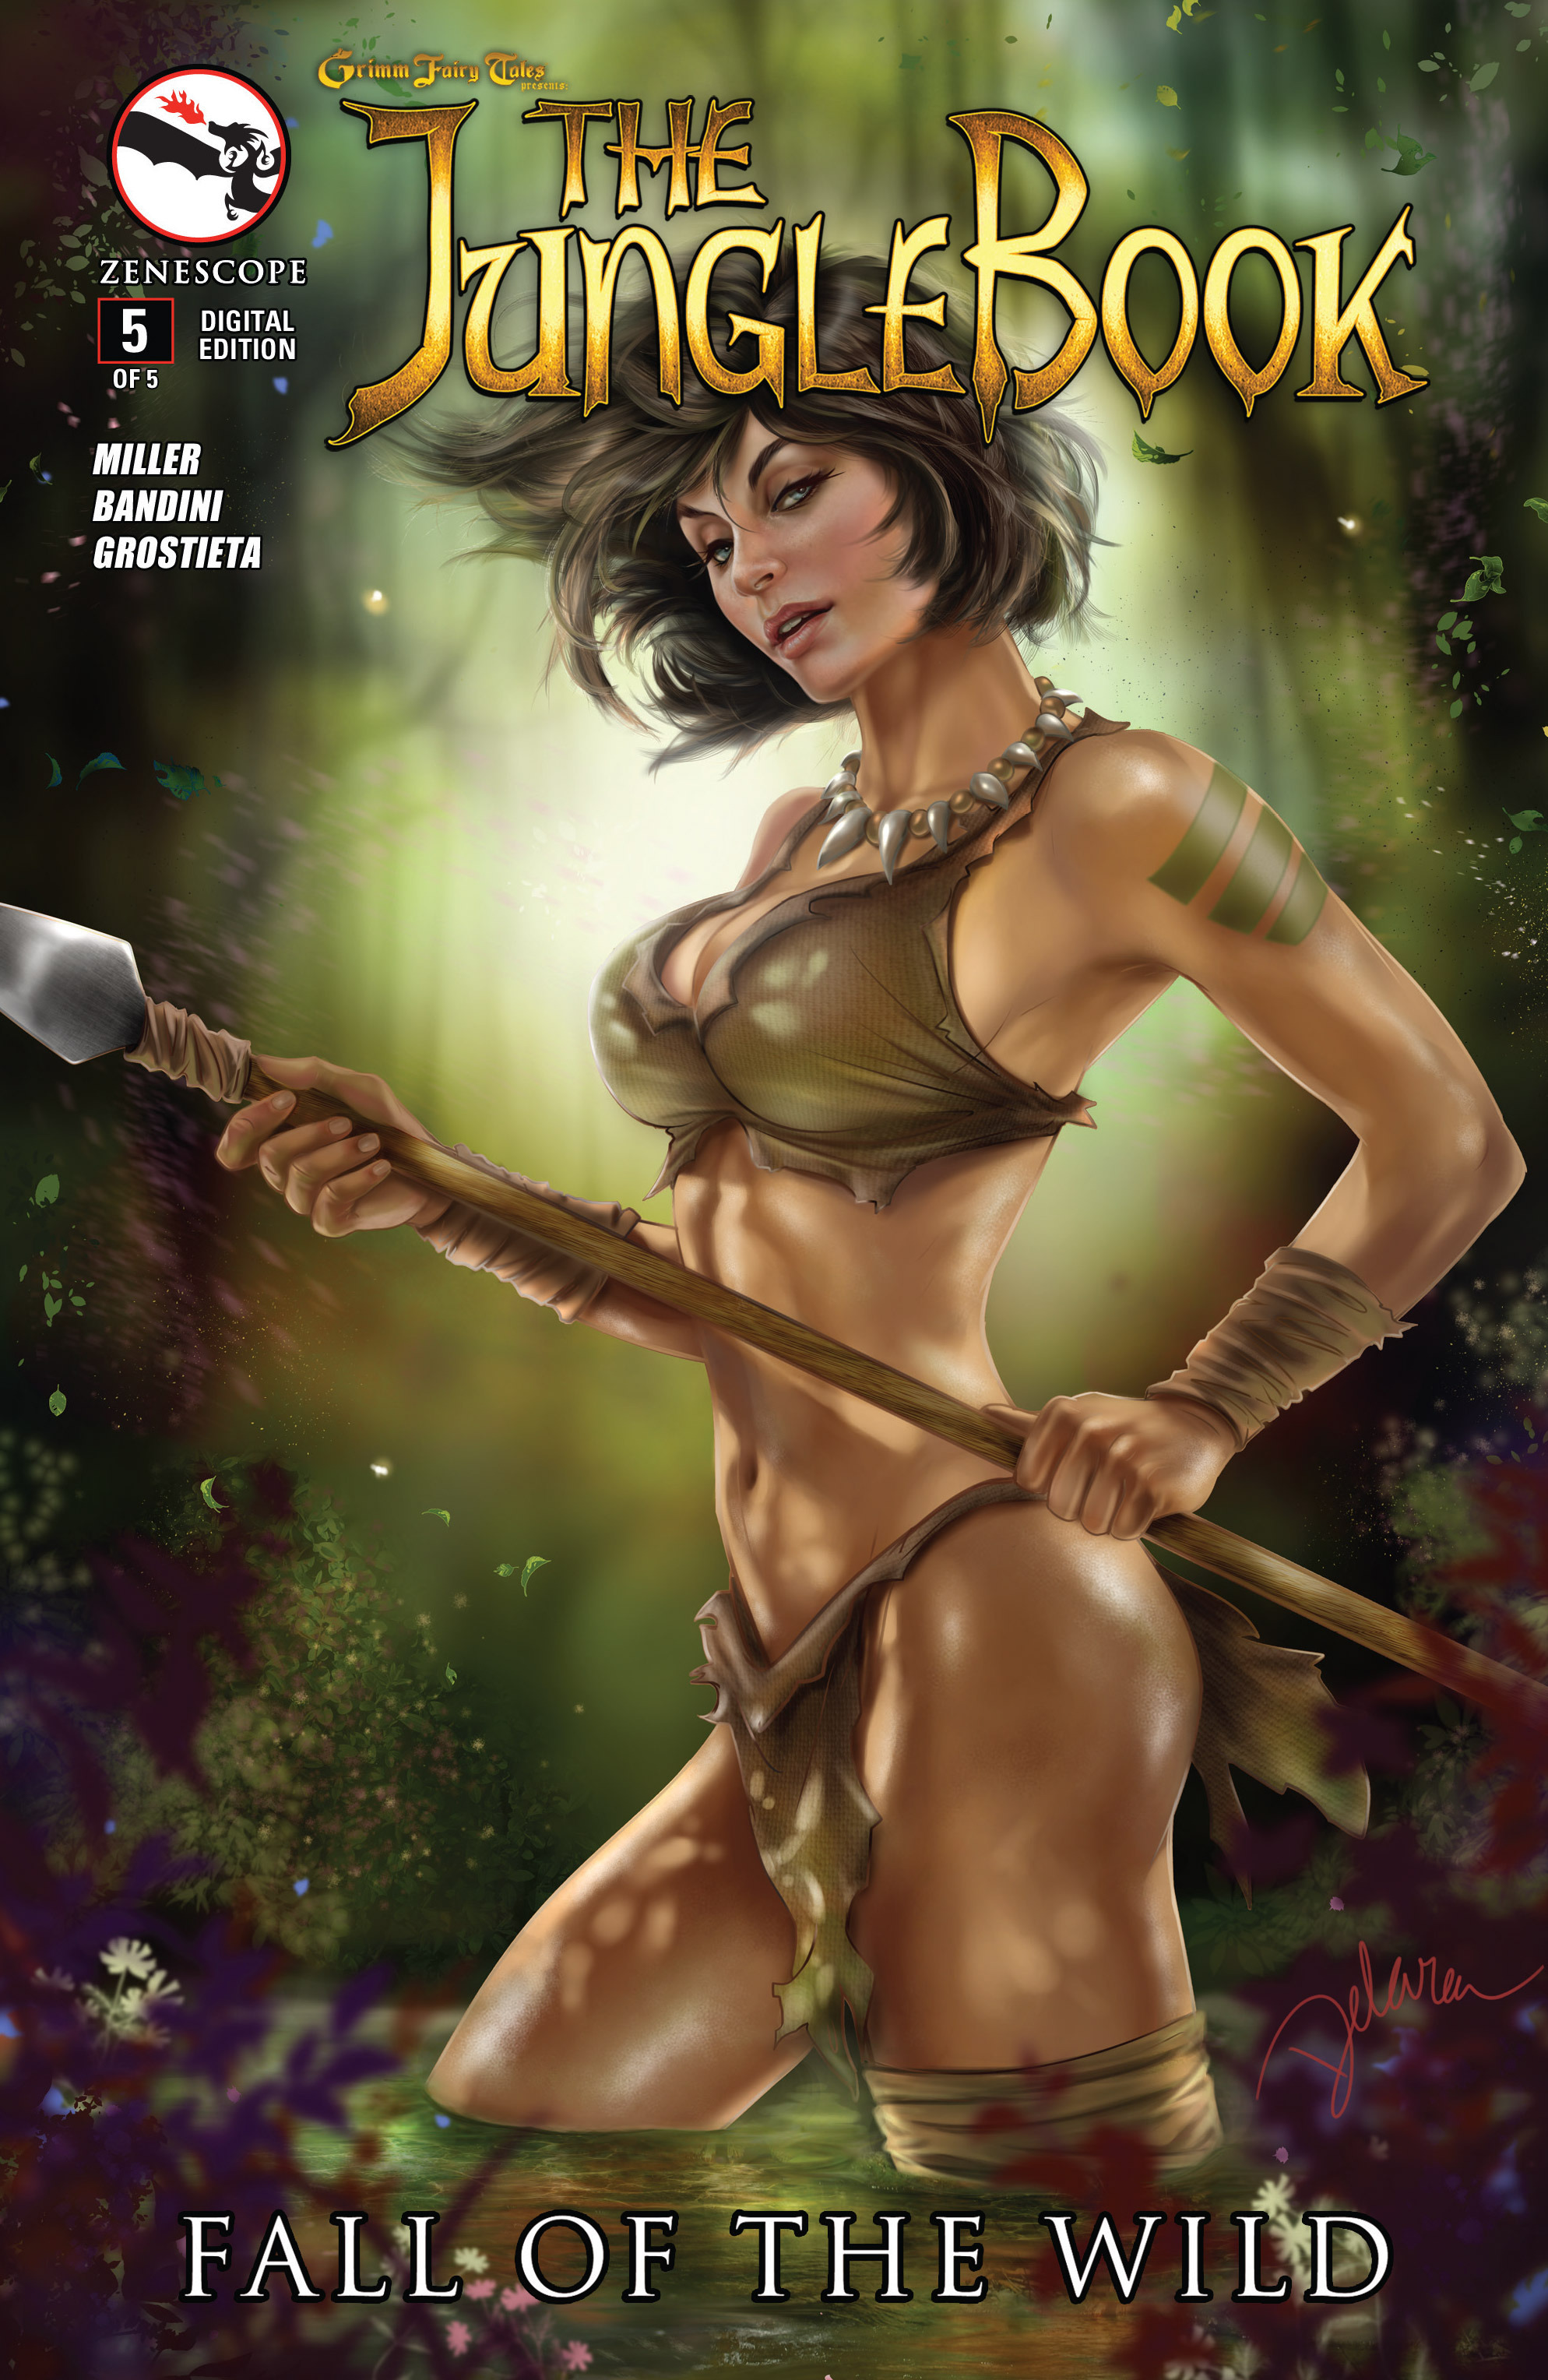 Grimm Fairy Tales presents The Jungle Book: Fall of the Wild 5 Page 1